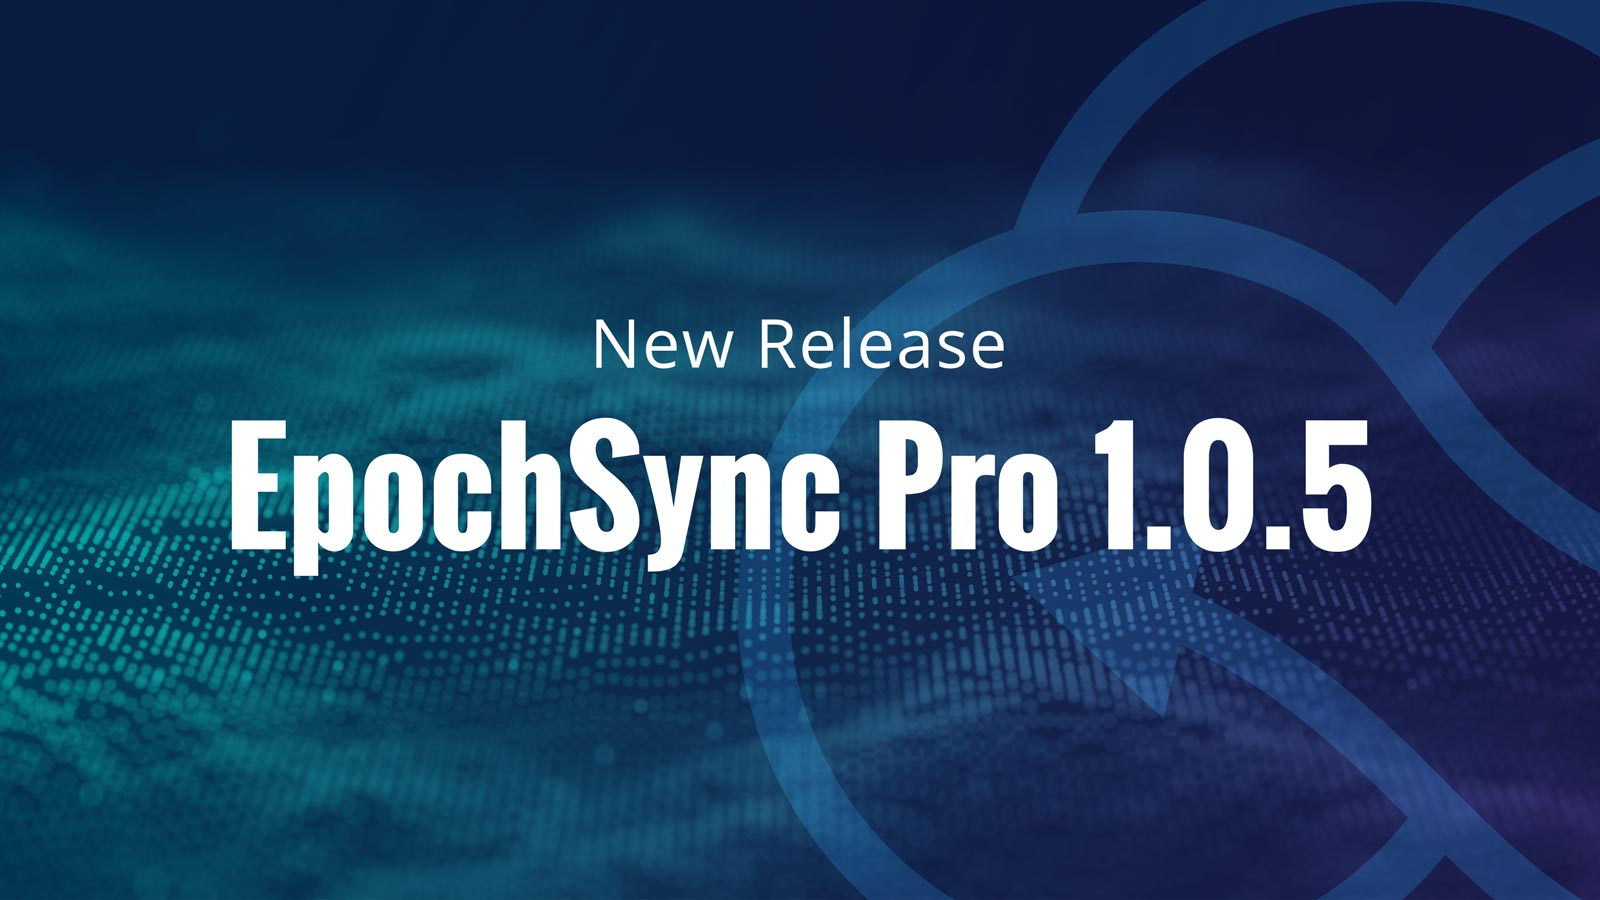 Just Announced: EpochSync Pro 1.0.5